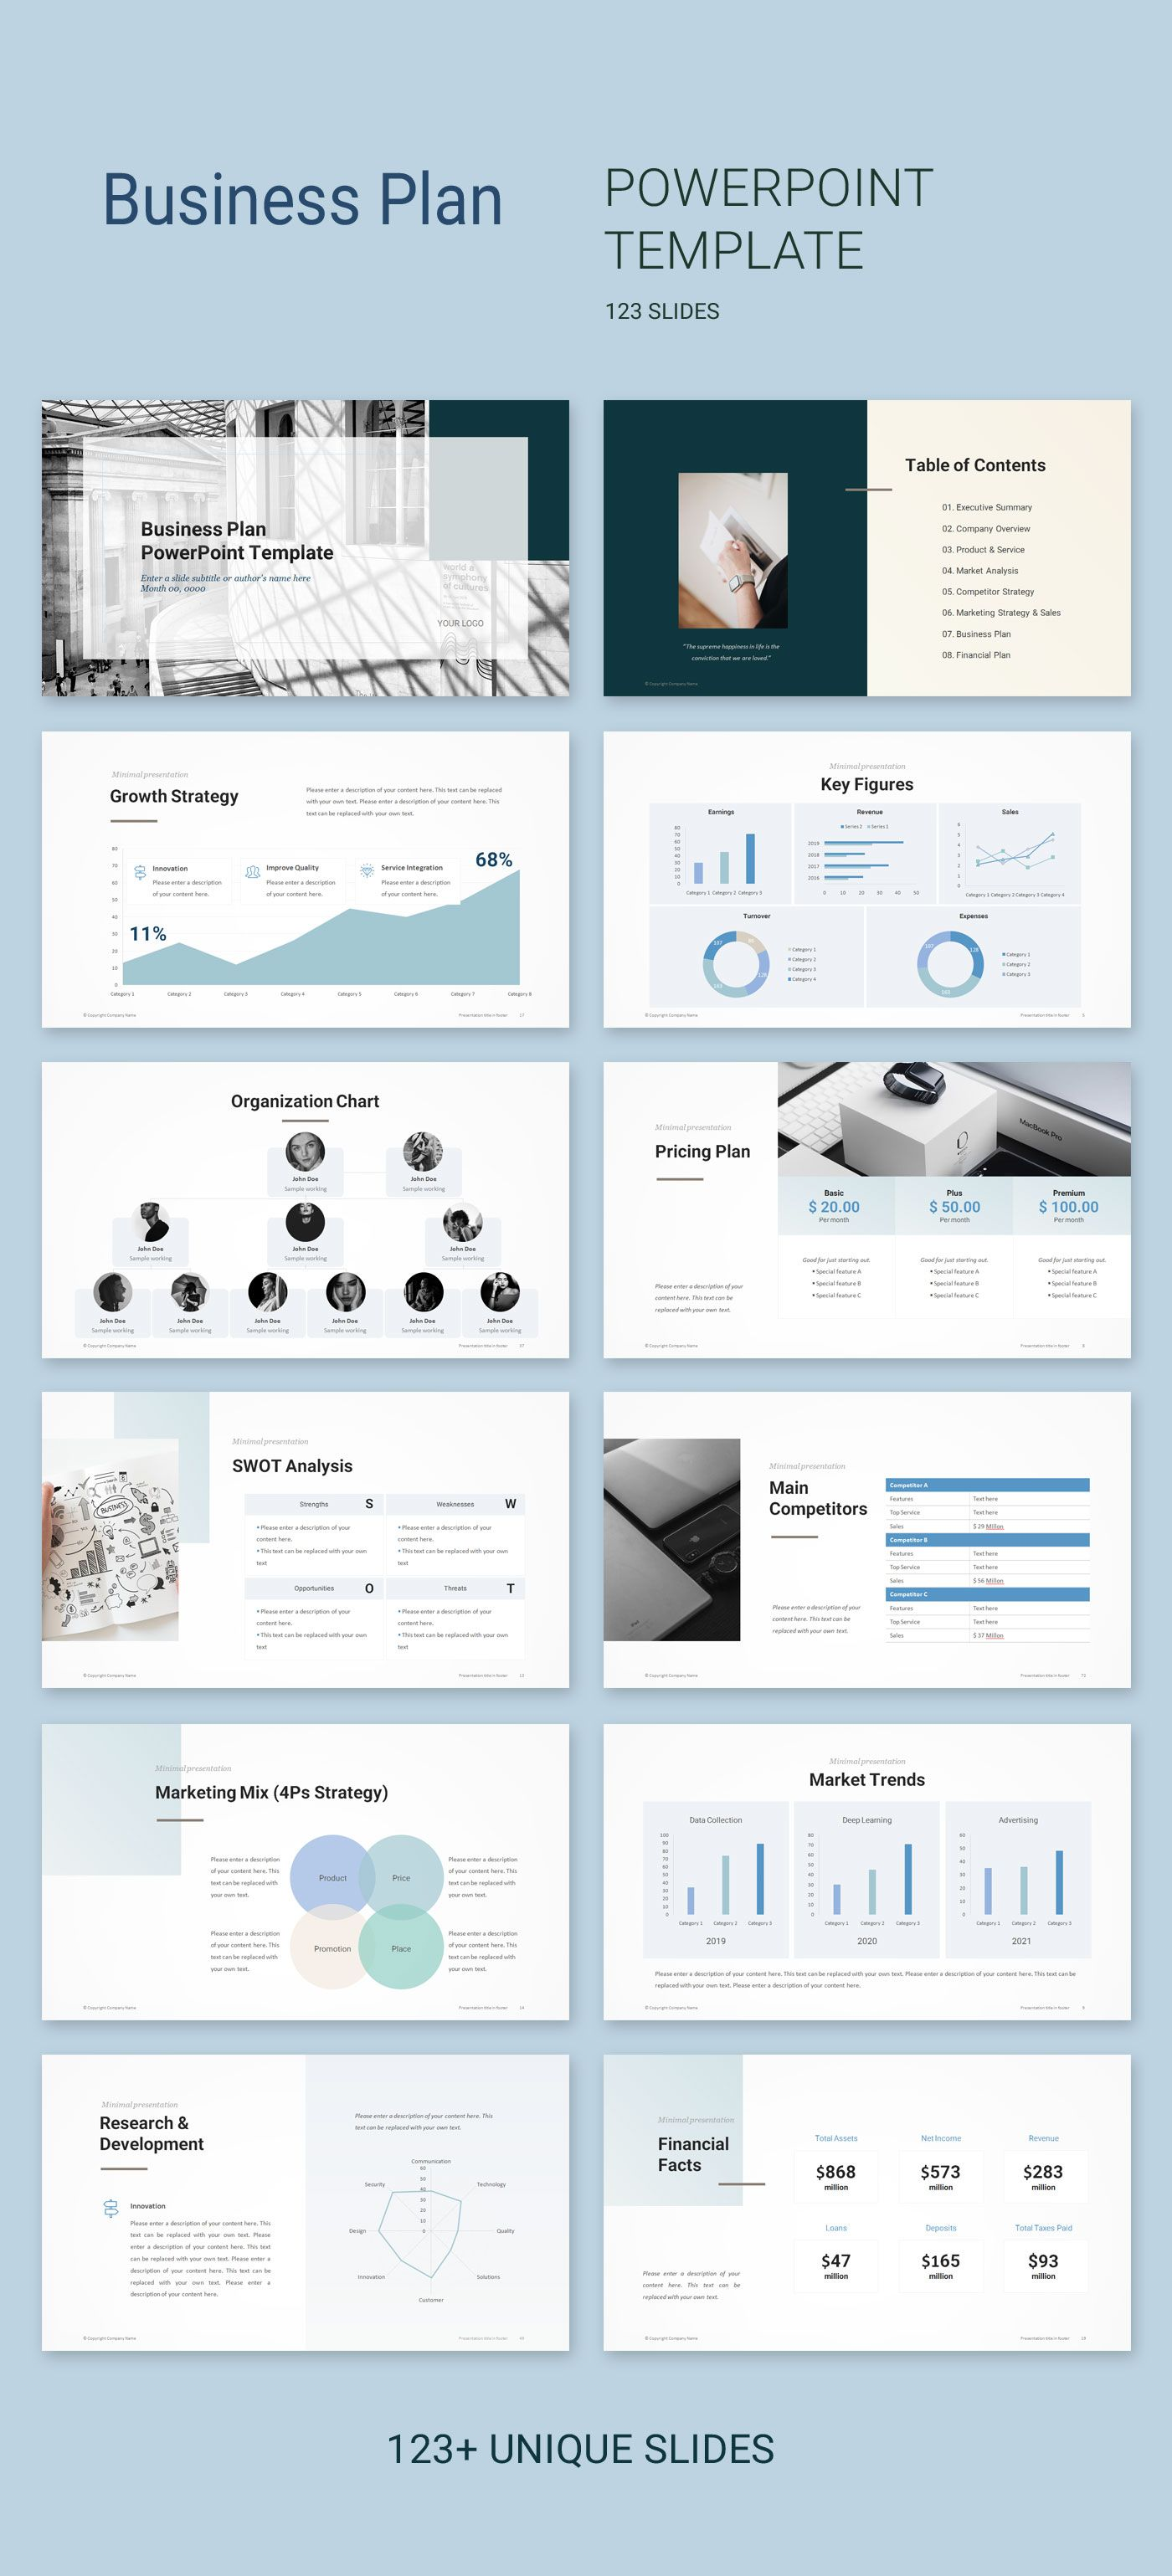 Business Plan PowerPoint Template 2019